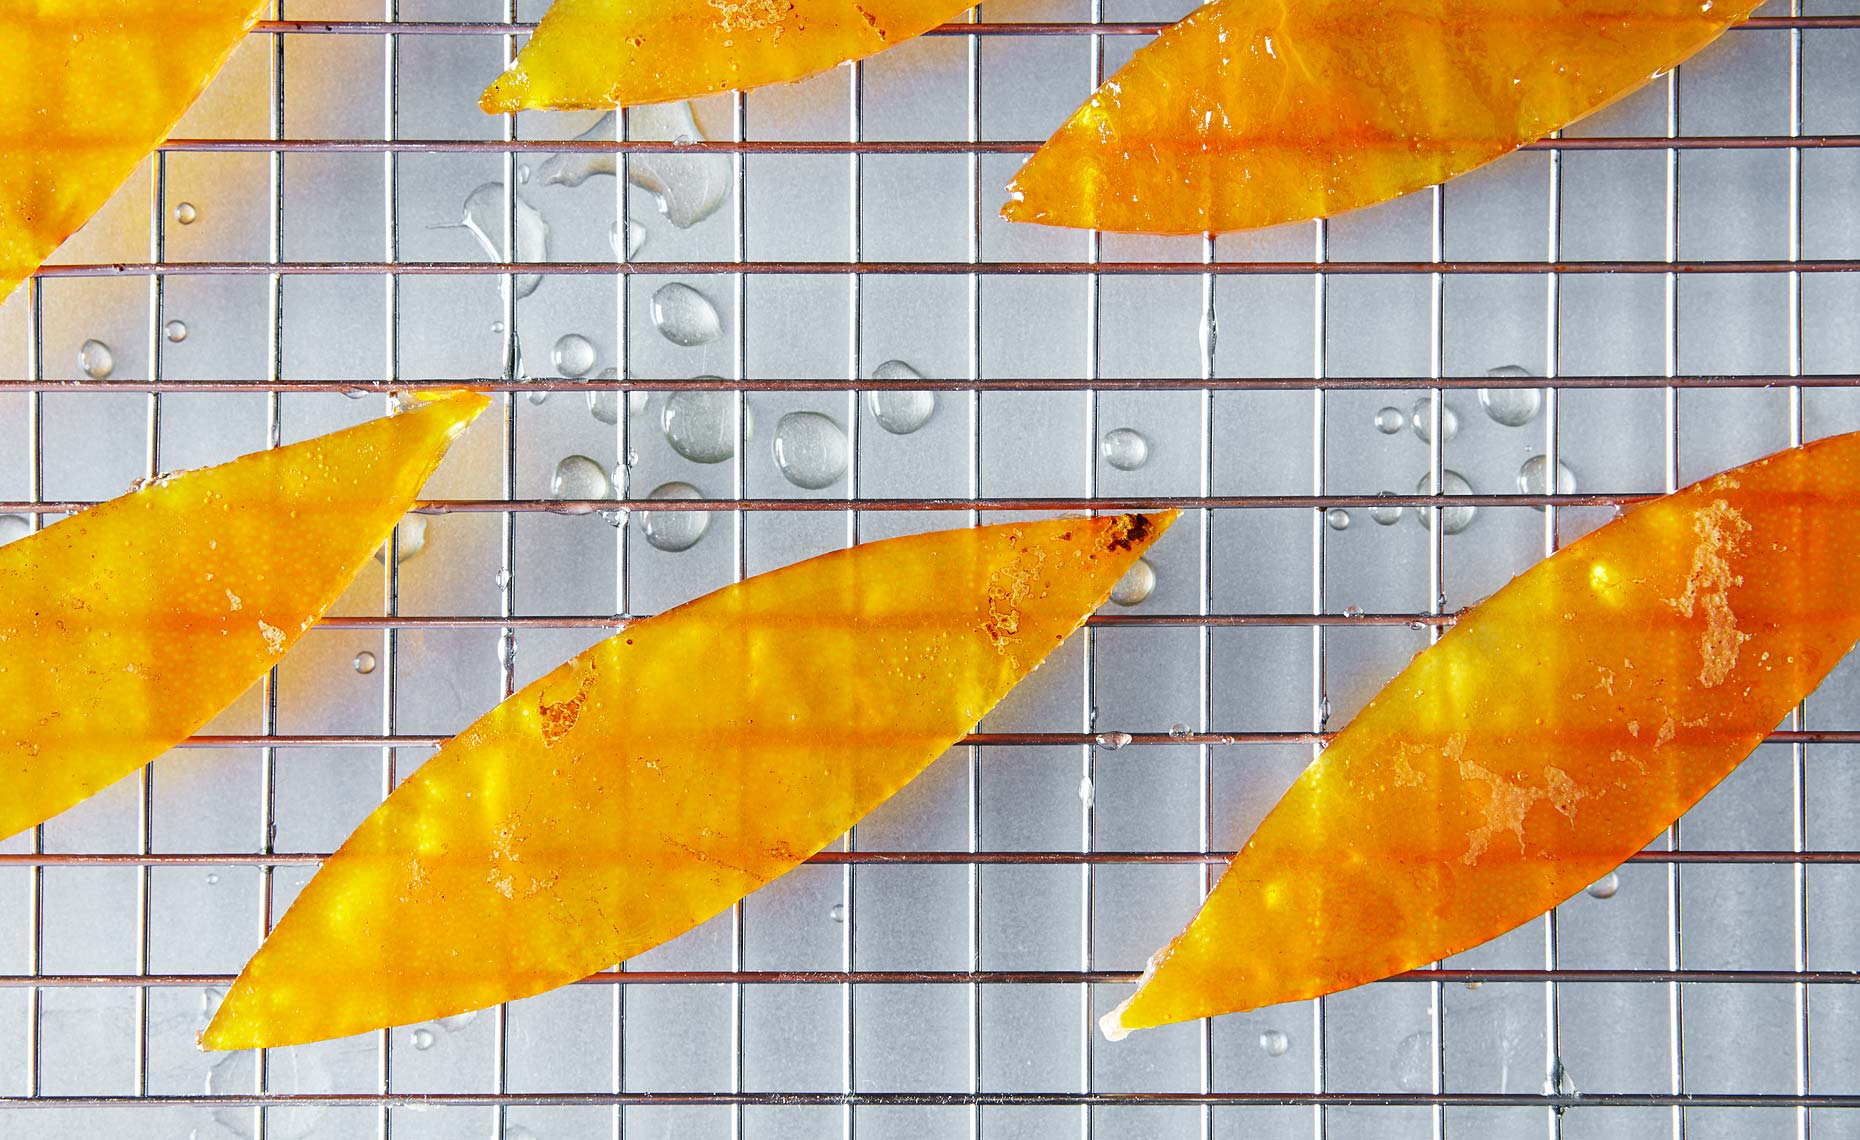 014_2015-0203_diy-candied-citrus-peel-183